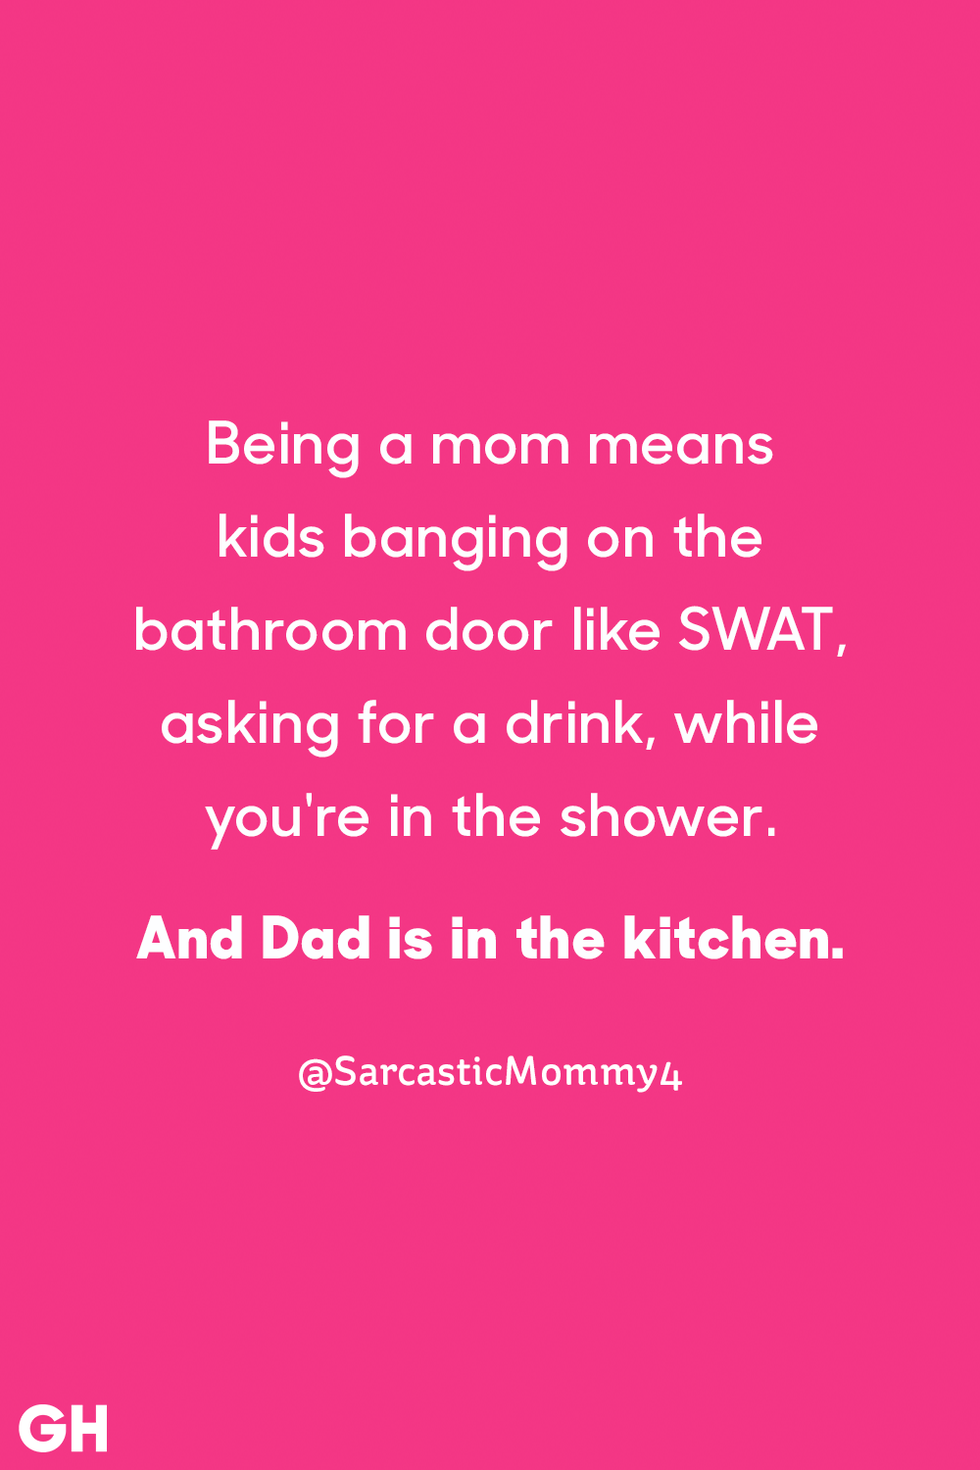 25 Hilarious Parenting Quotes That Will Have You Saying